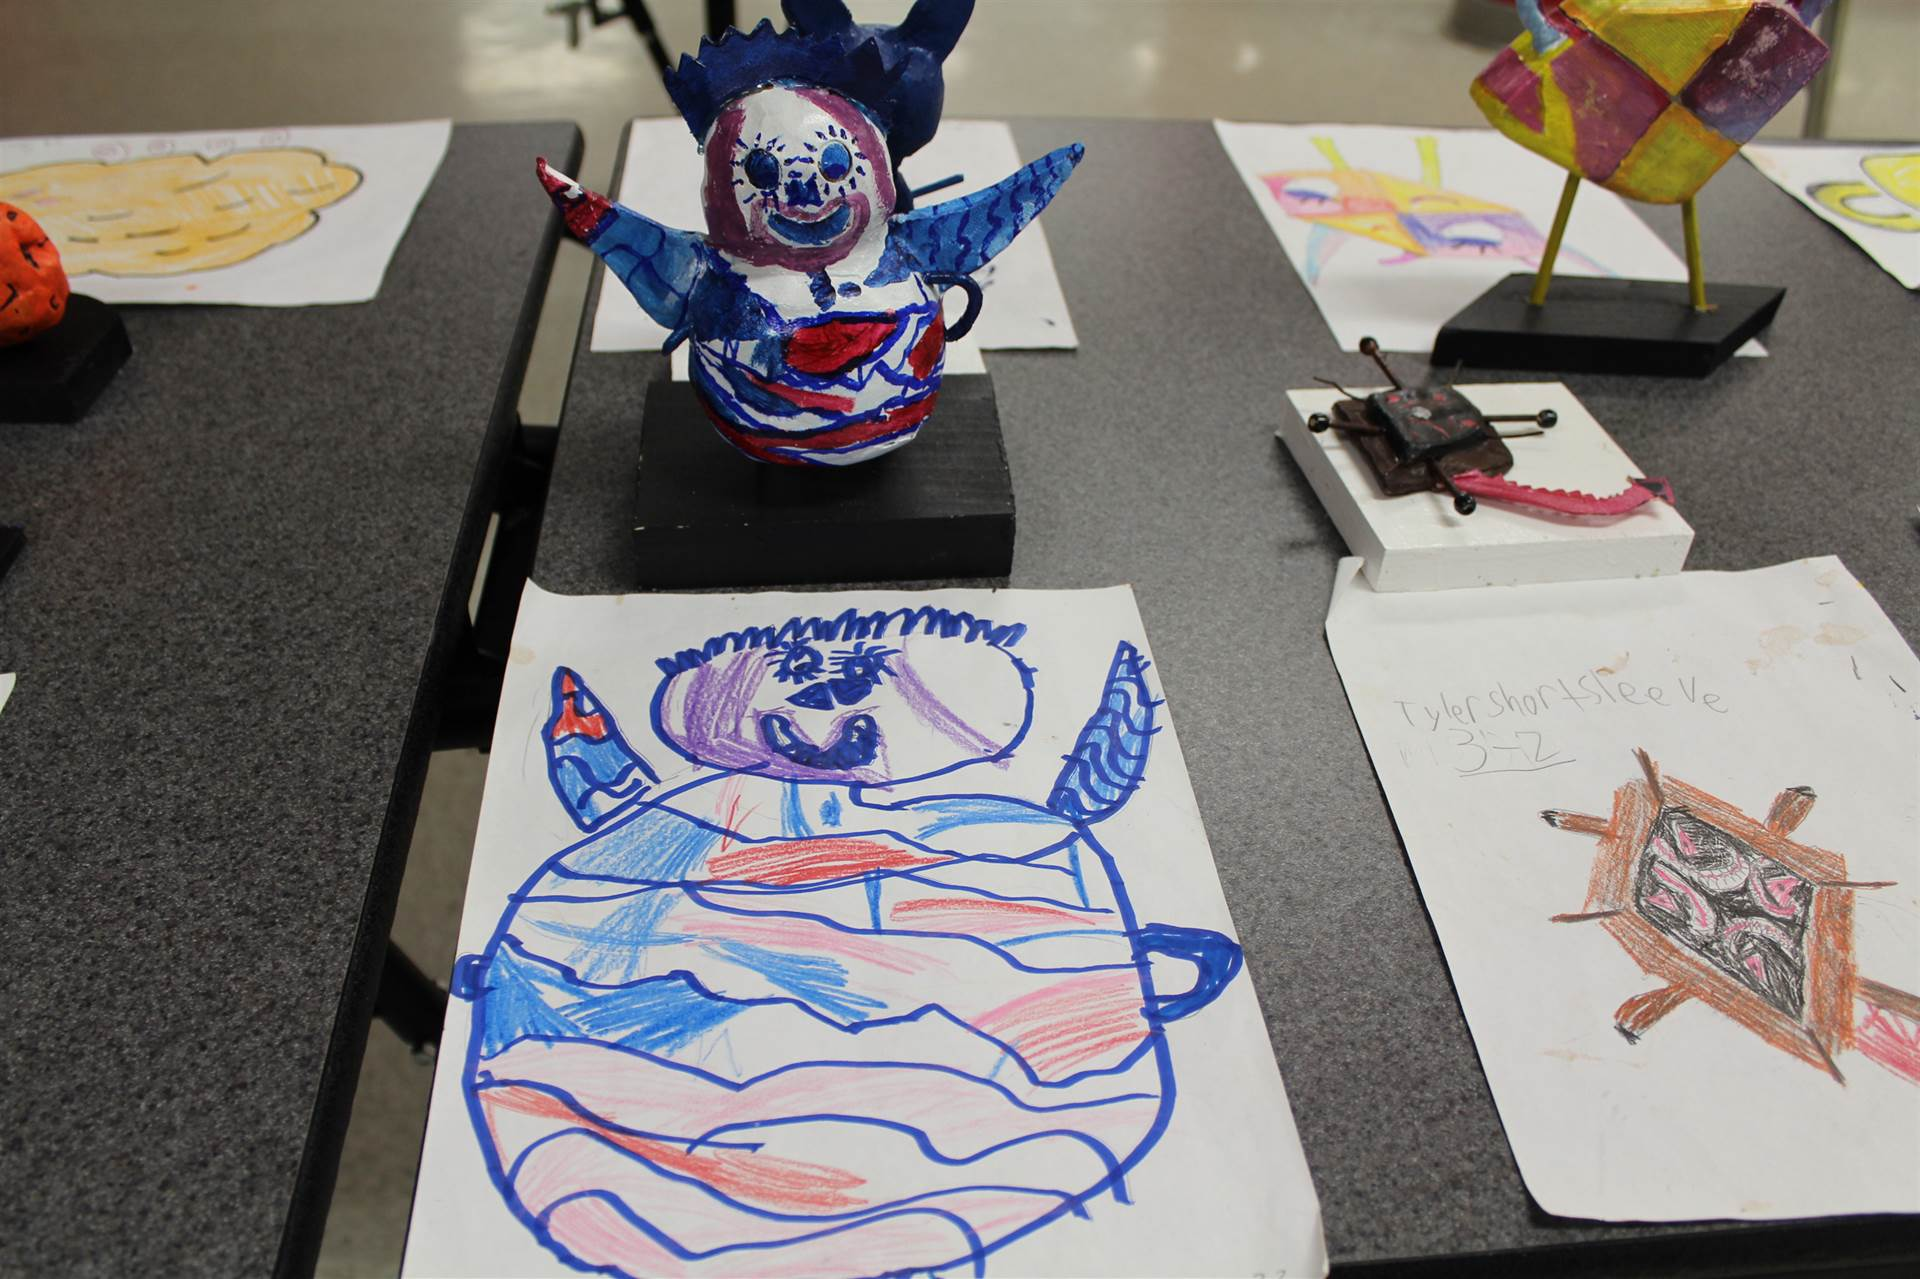 monster 3 d sculpture next to drawn picture 24